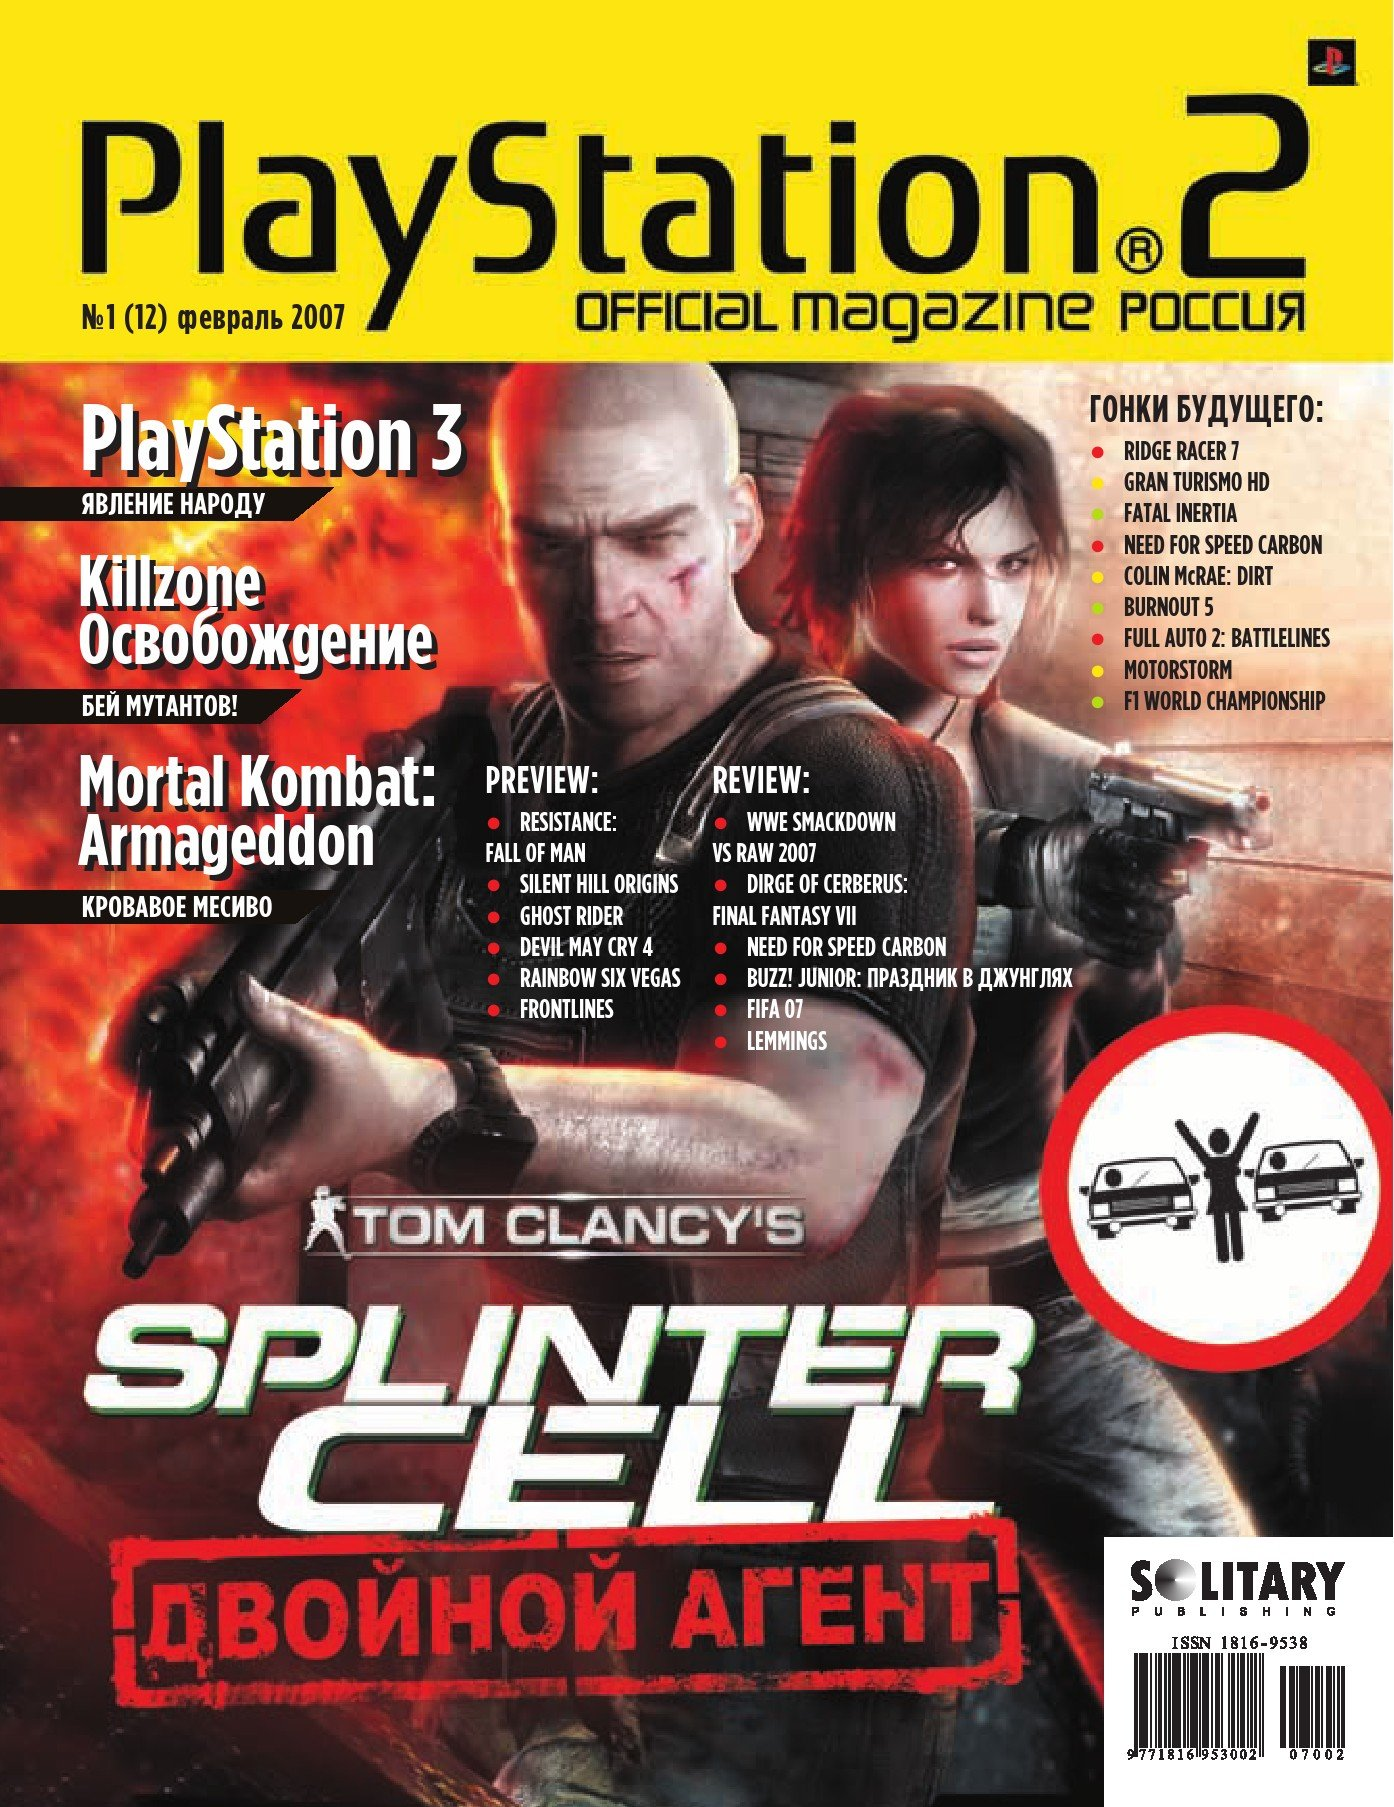 Playstation 2 Official Magazine (Russia) Issue 12 - Feb. '07